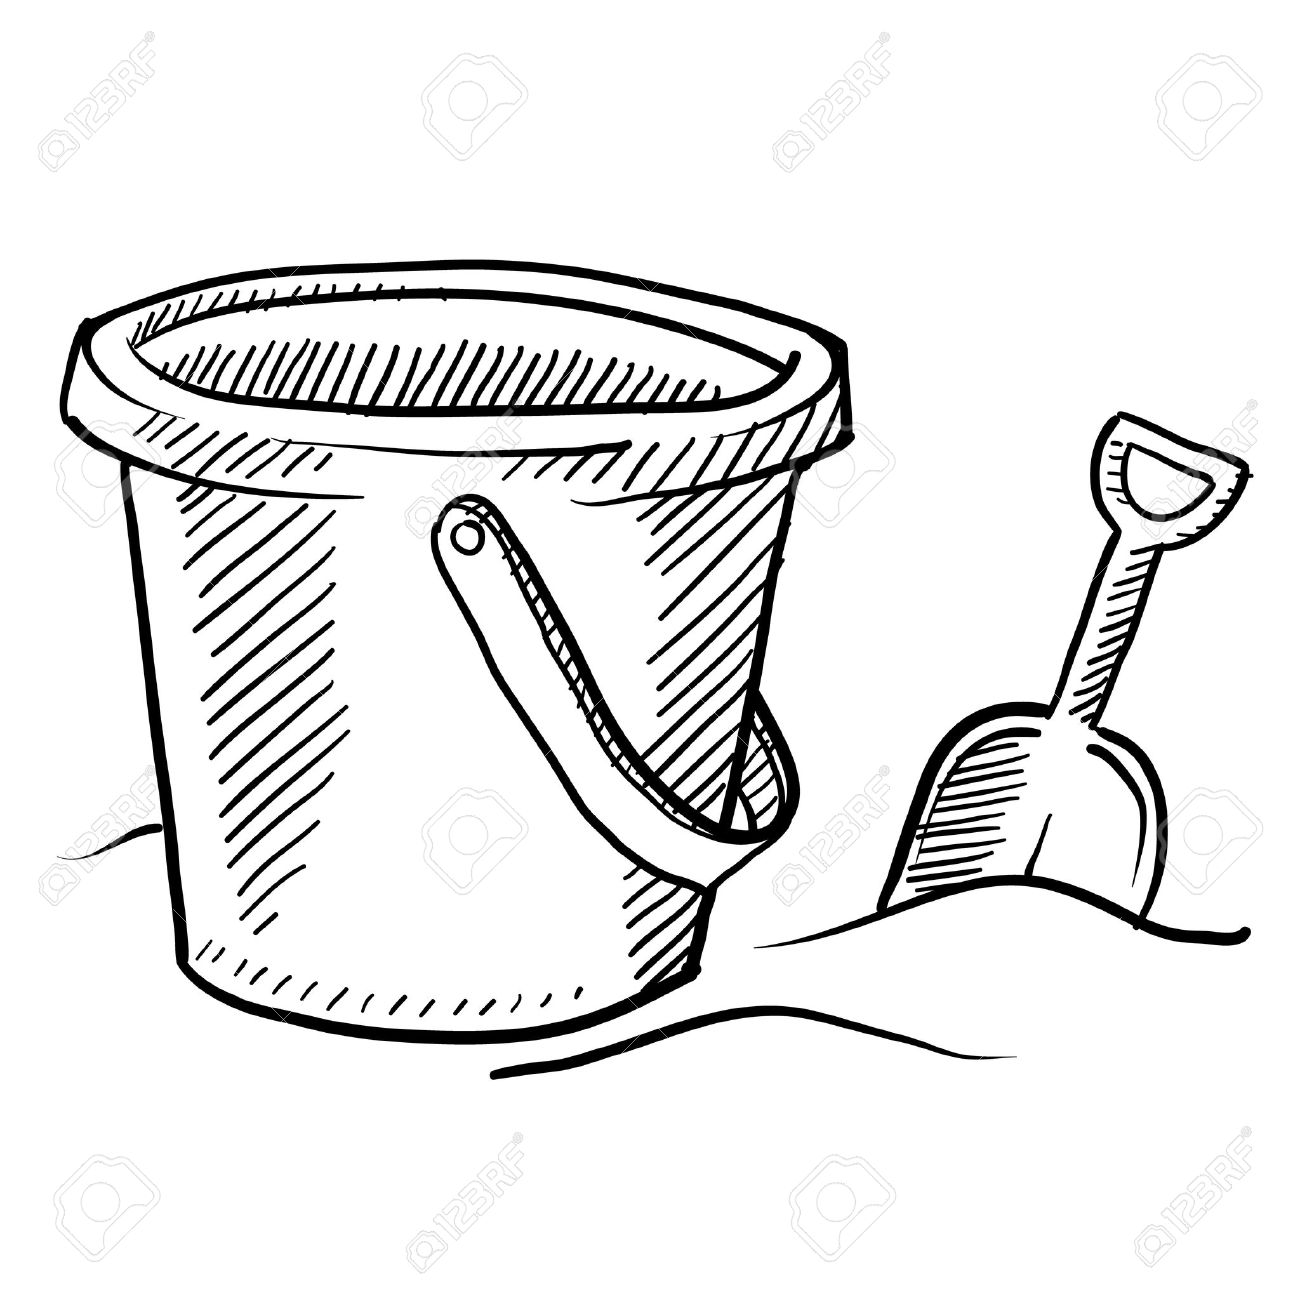 Doodle style children's beach sand castle bucket and shovel in vector format Stock Photo - 11575113